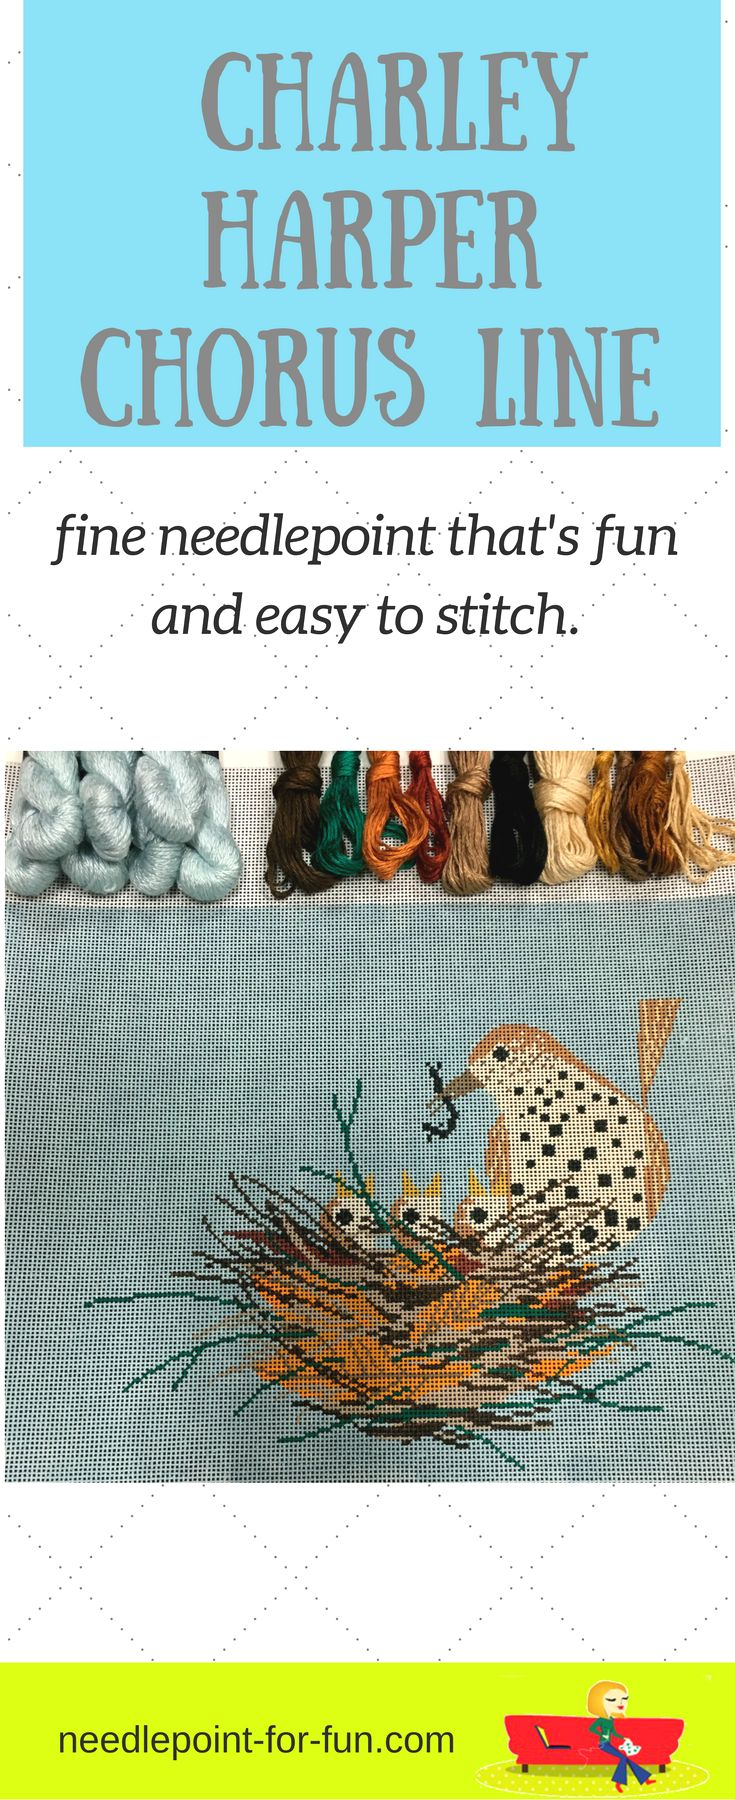 Charley Harper fun and easy needlepoint craft project.